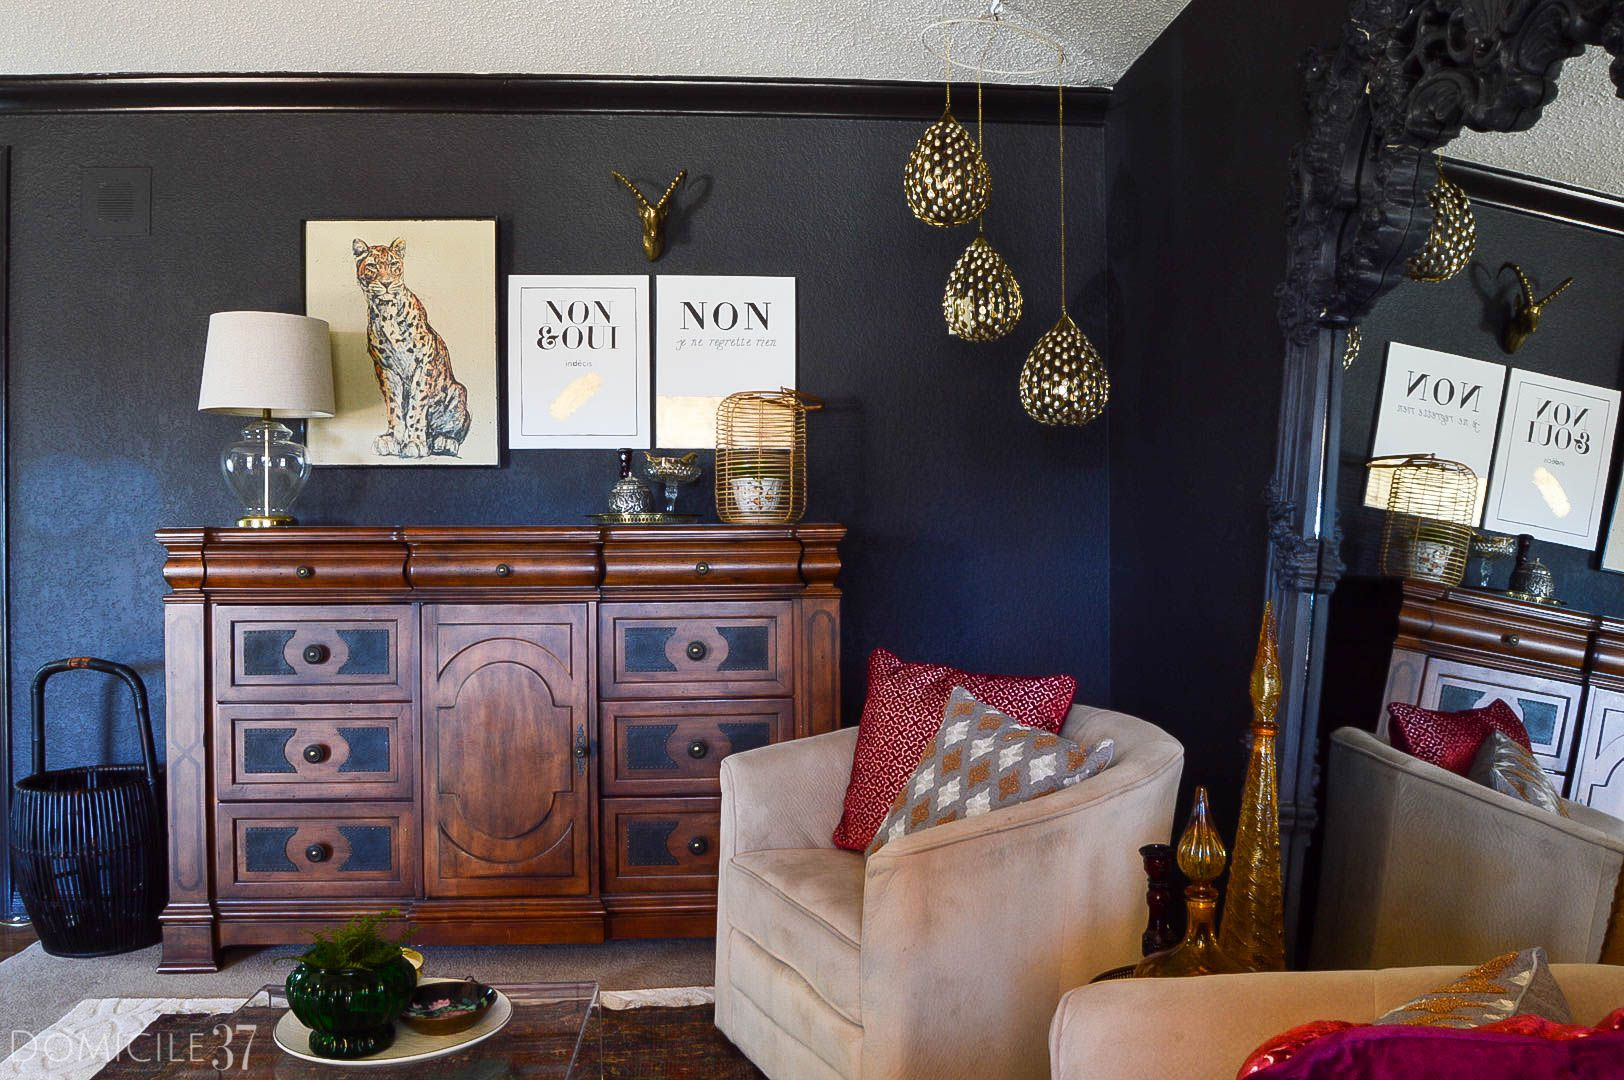 Vintage Eclectic Sitting room inspired by Moroccan decor   Layered persian rugs   Dresser console on black wall with chic art   vintage art   acrylic coffee table with swivel chairs